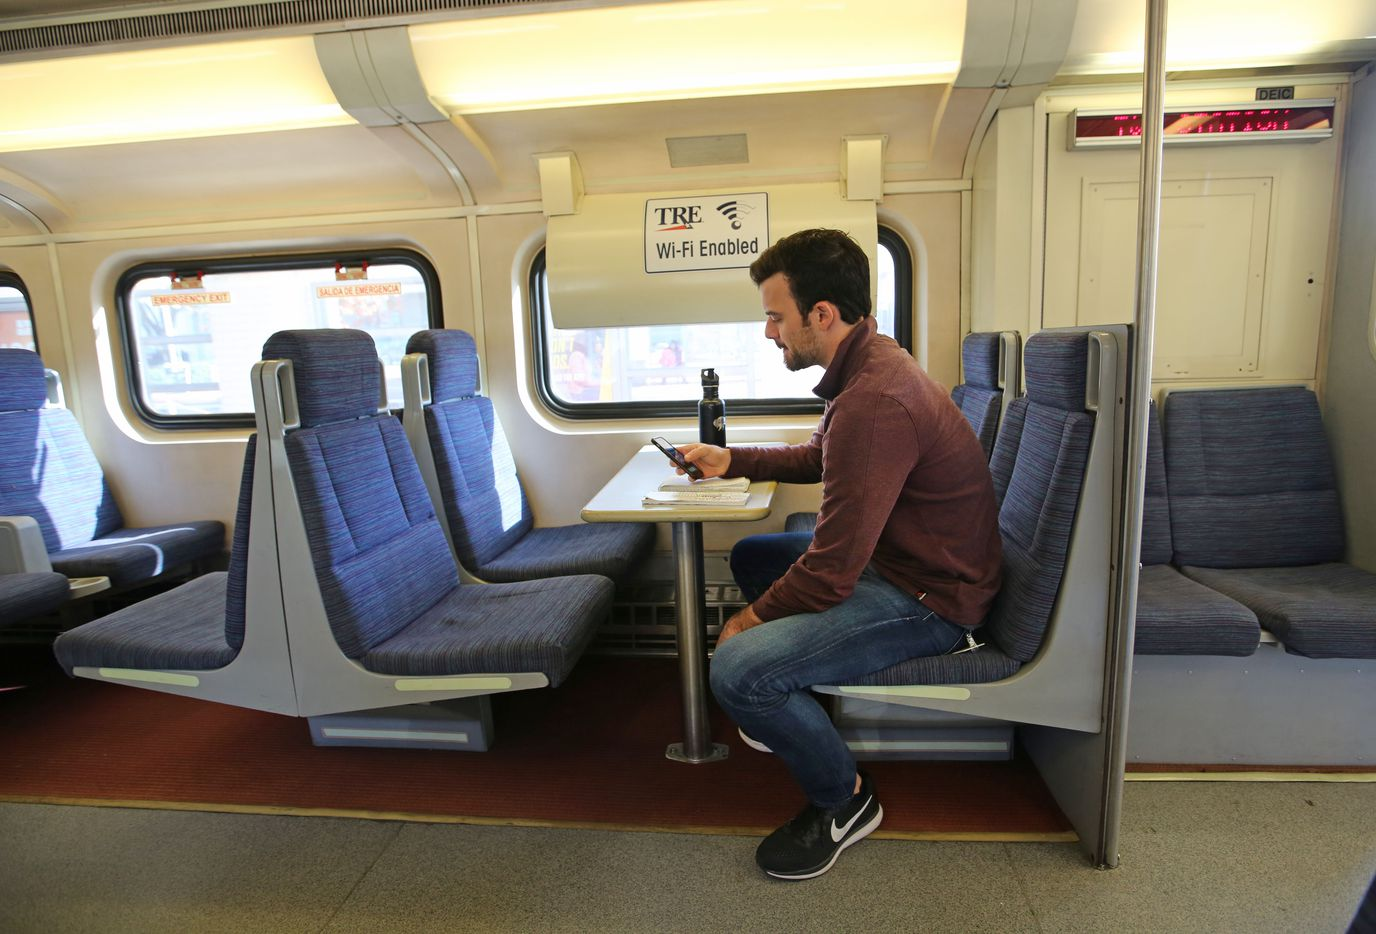 TRE trains feature booths and WiFi.